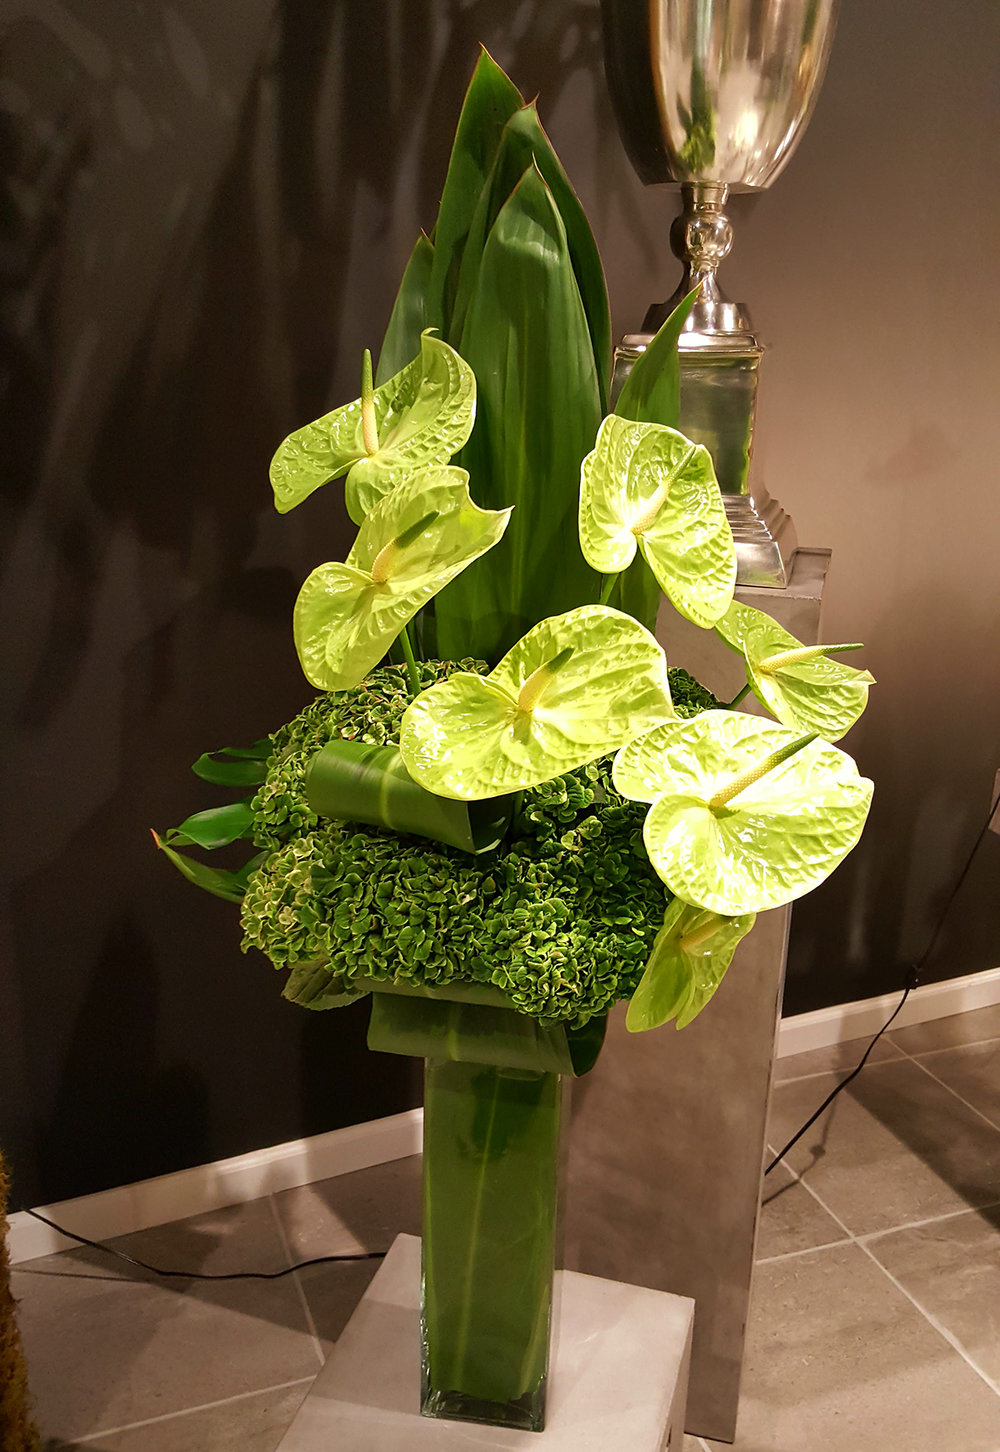 Green flowers, moss and leaves designed for corporate decor by Bouquets & Beyond in Woodbury, CT